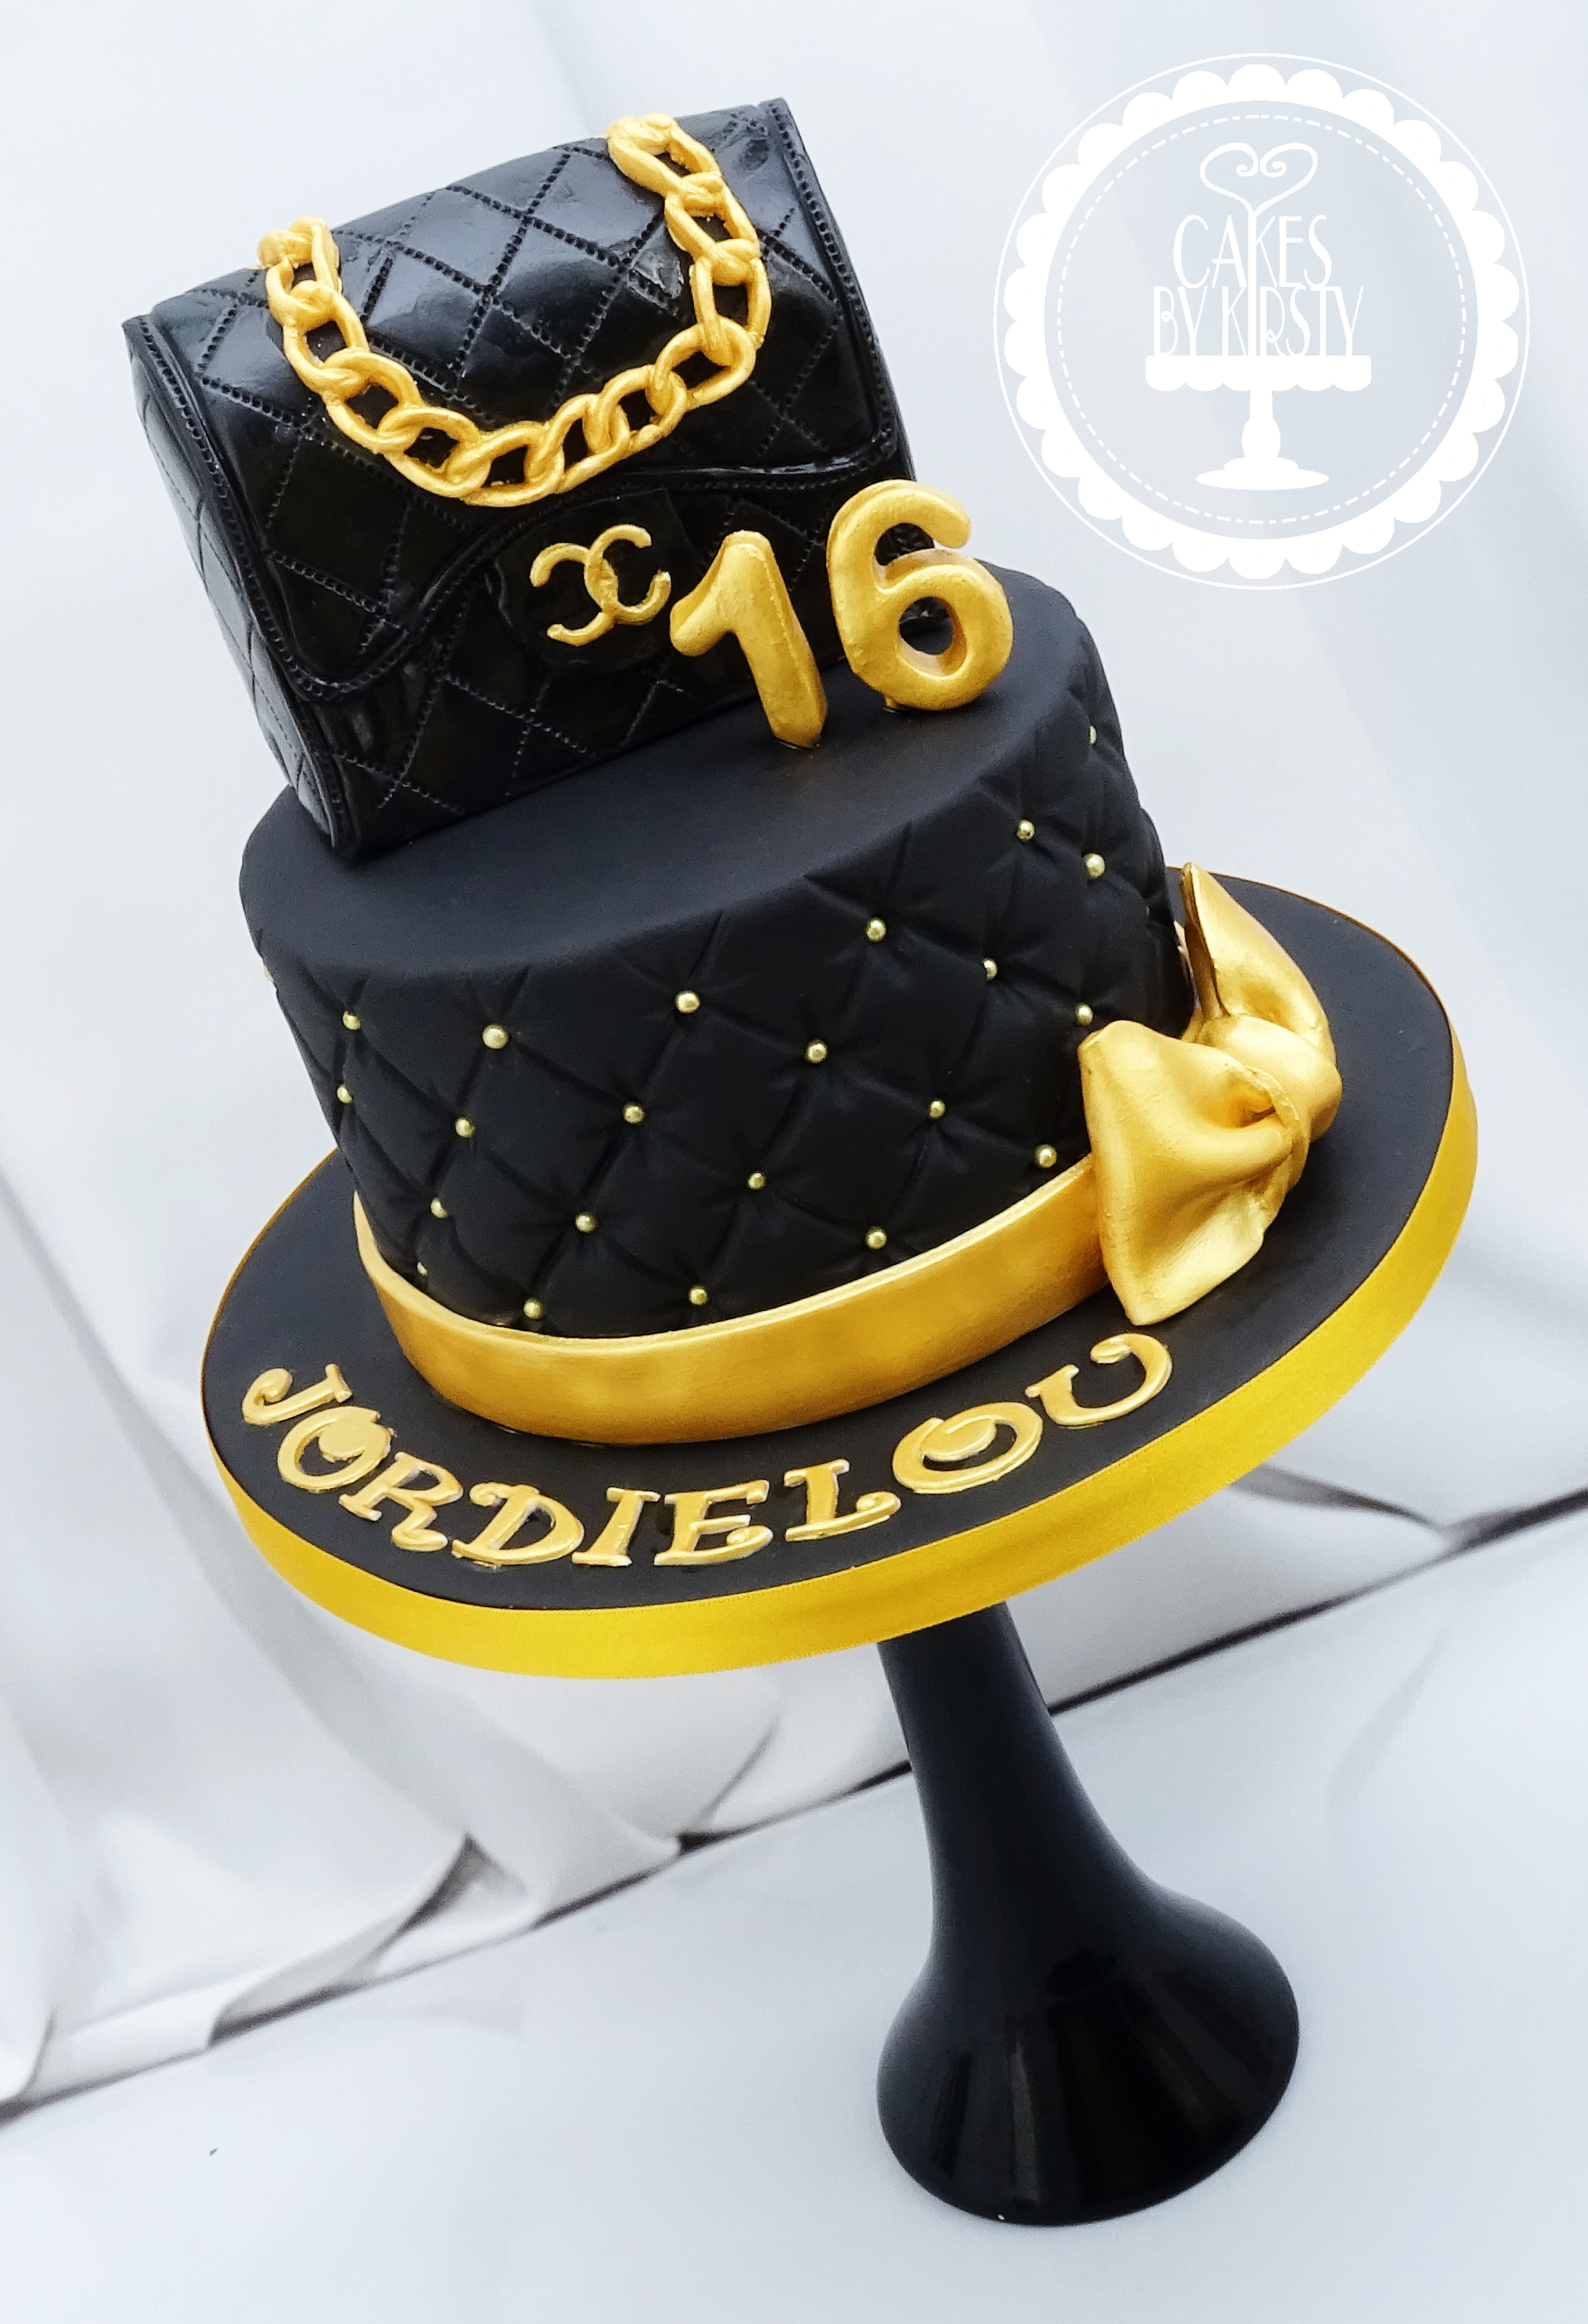 Chanel Bag Cake for 16th Birthday